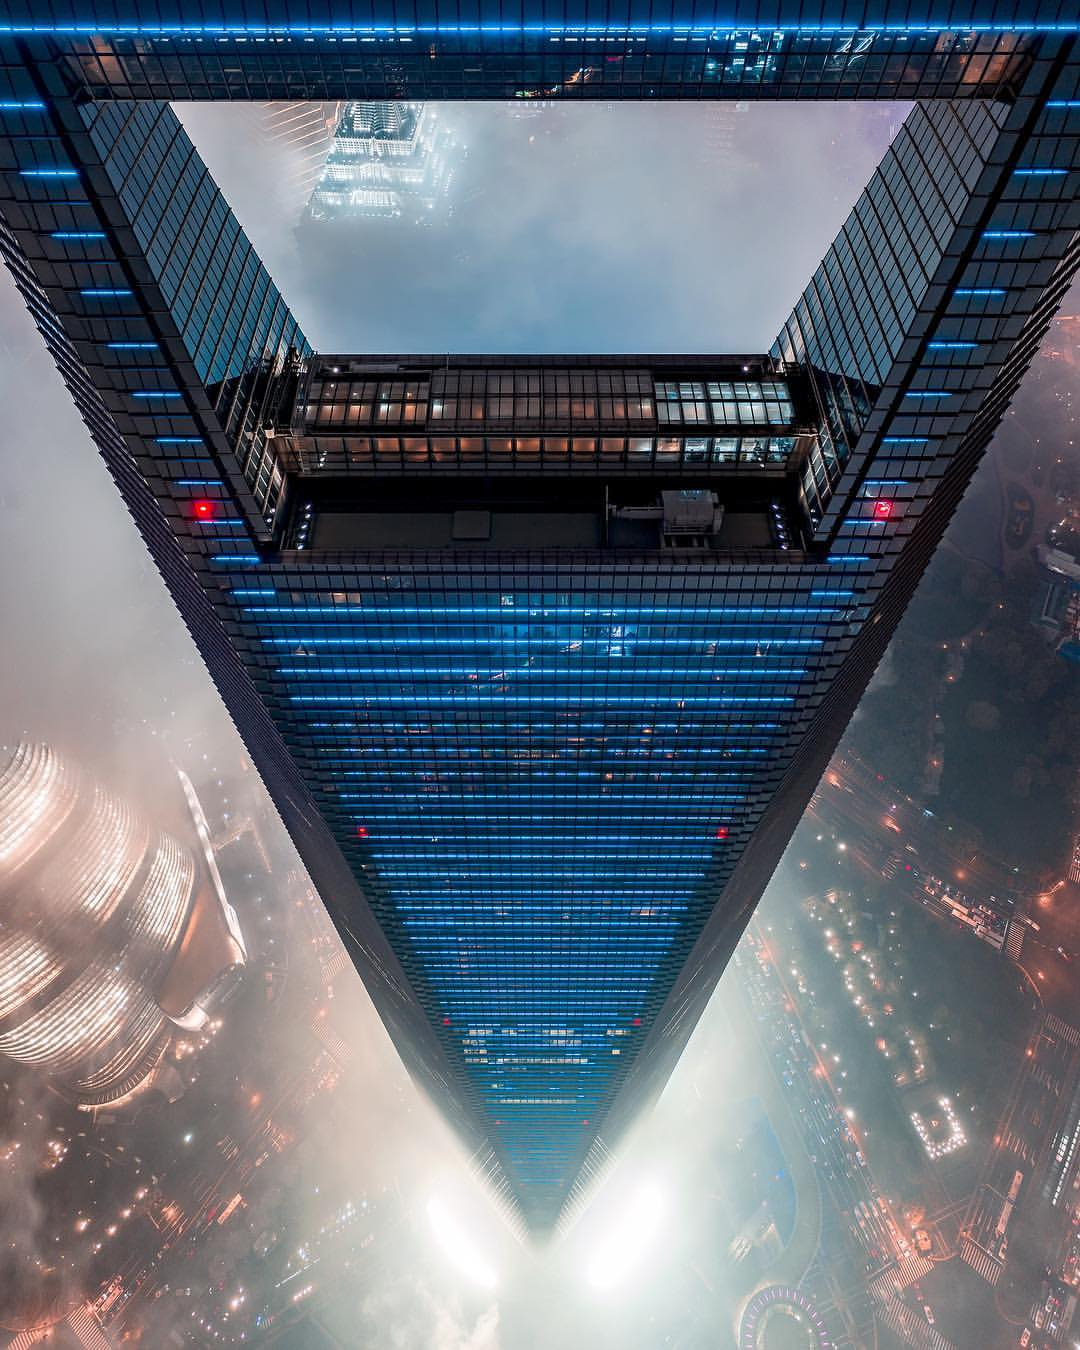 architecture_photography_17.jpg